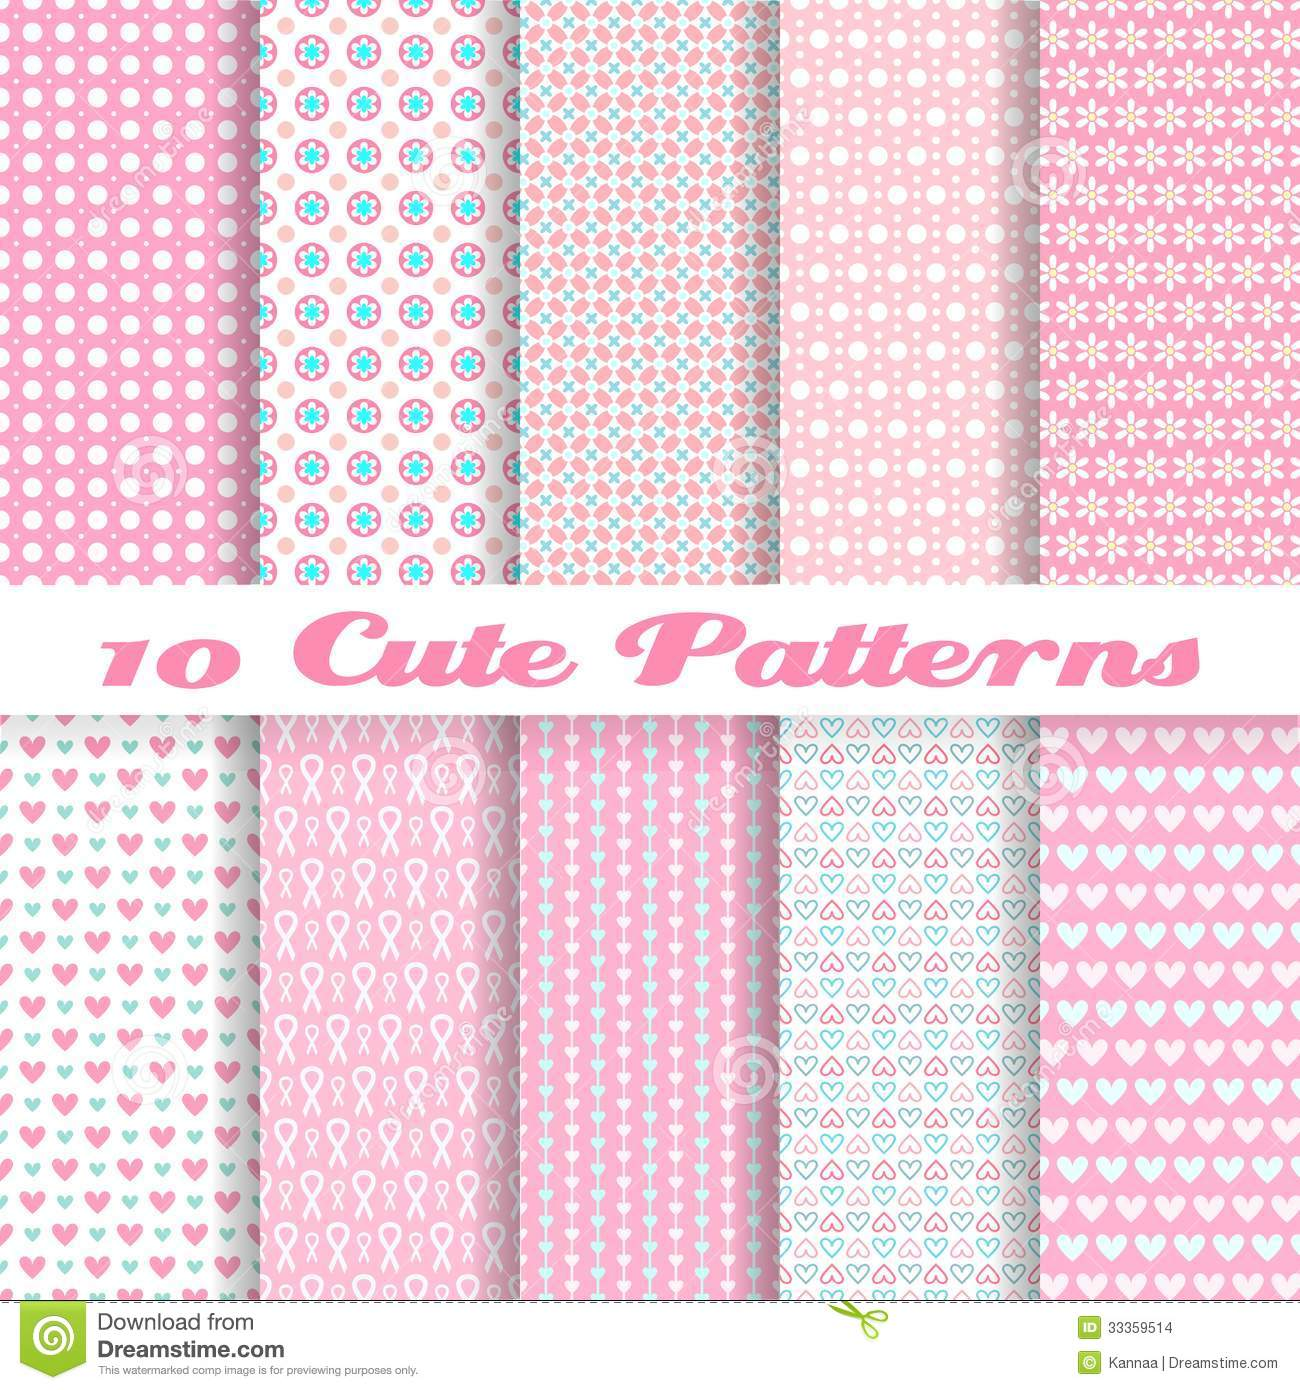 Cute different vector seamless patterns (tiling).